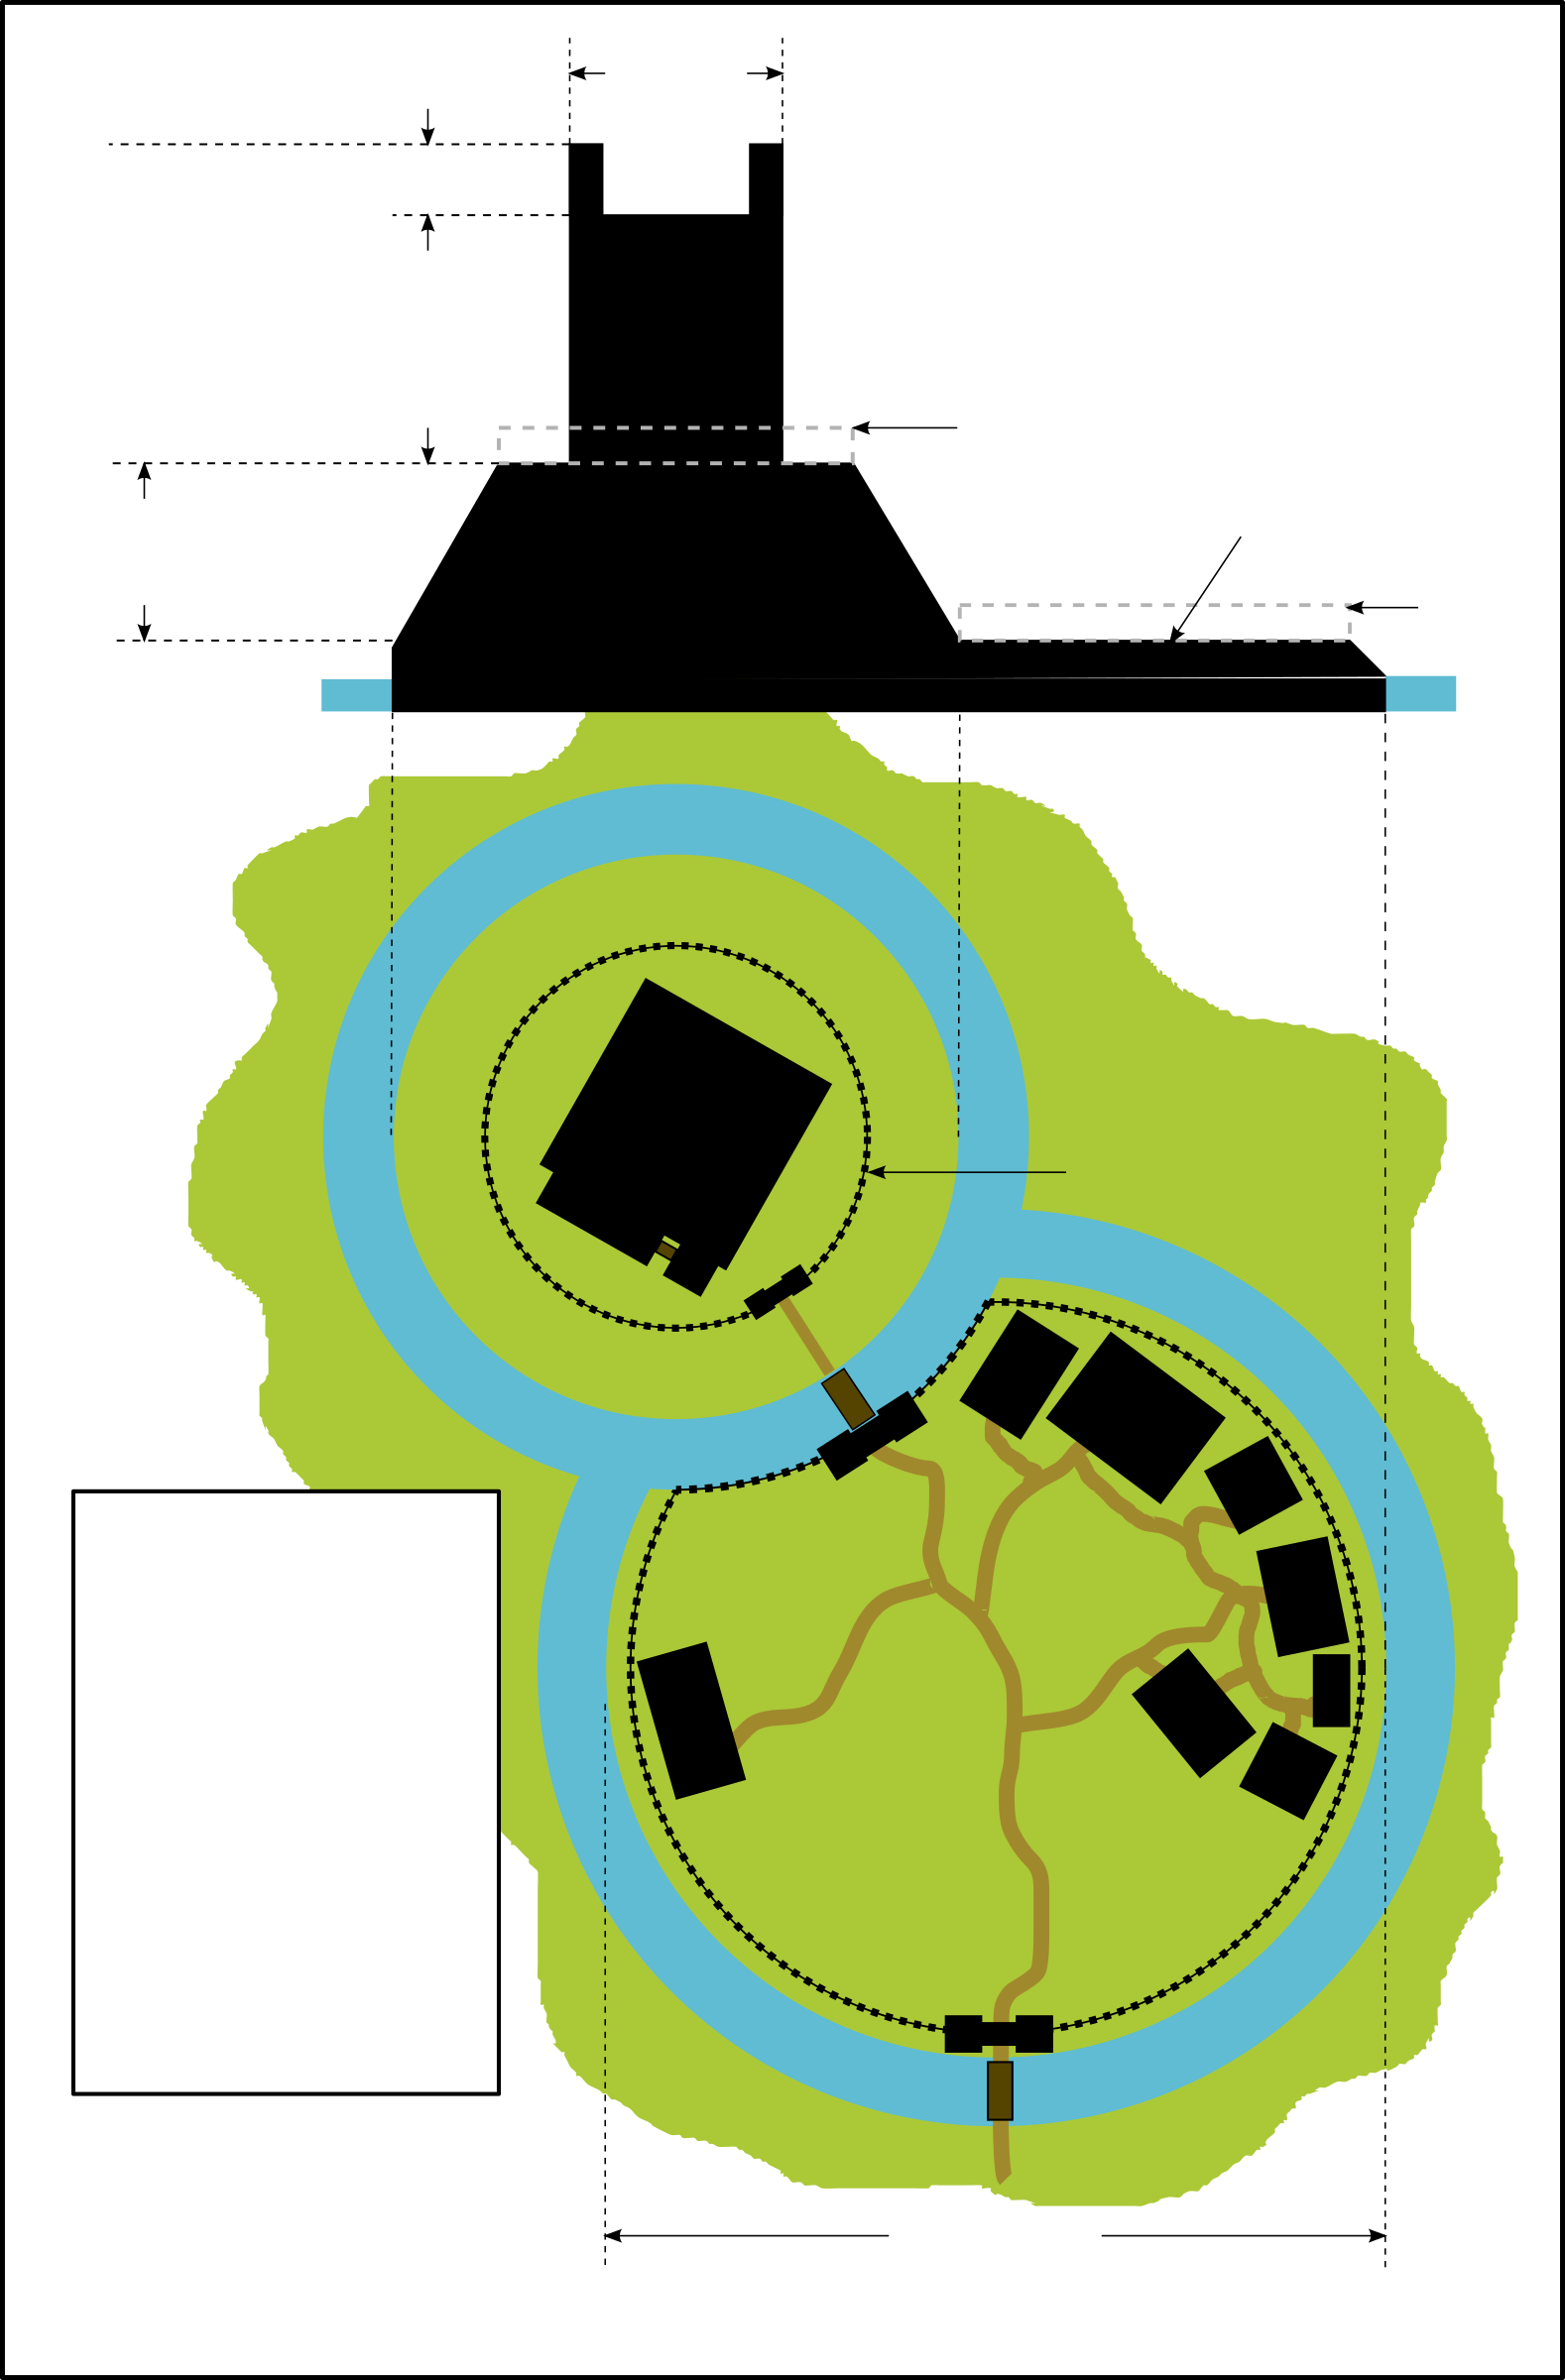 motte and bailey castle labeled diagram desktop computer clipart